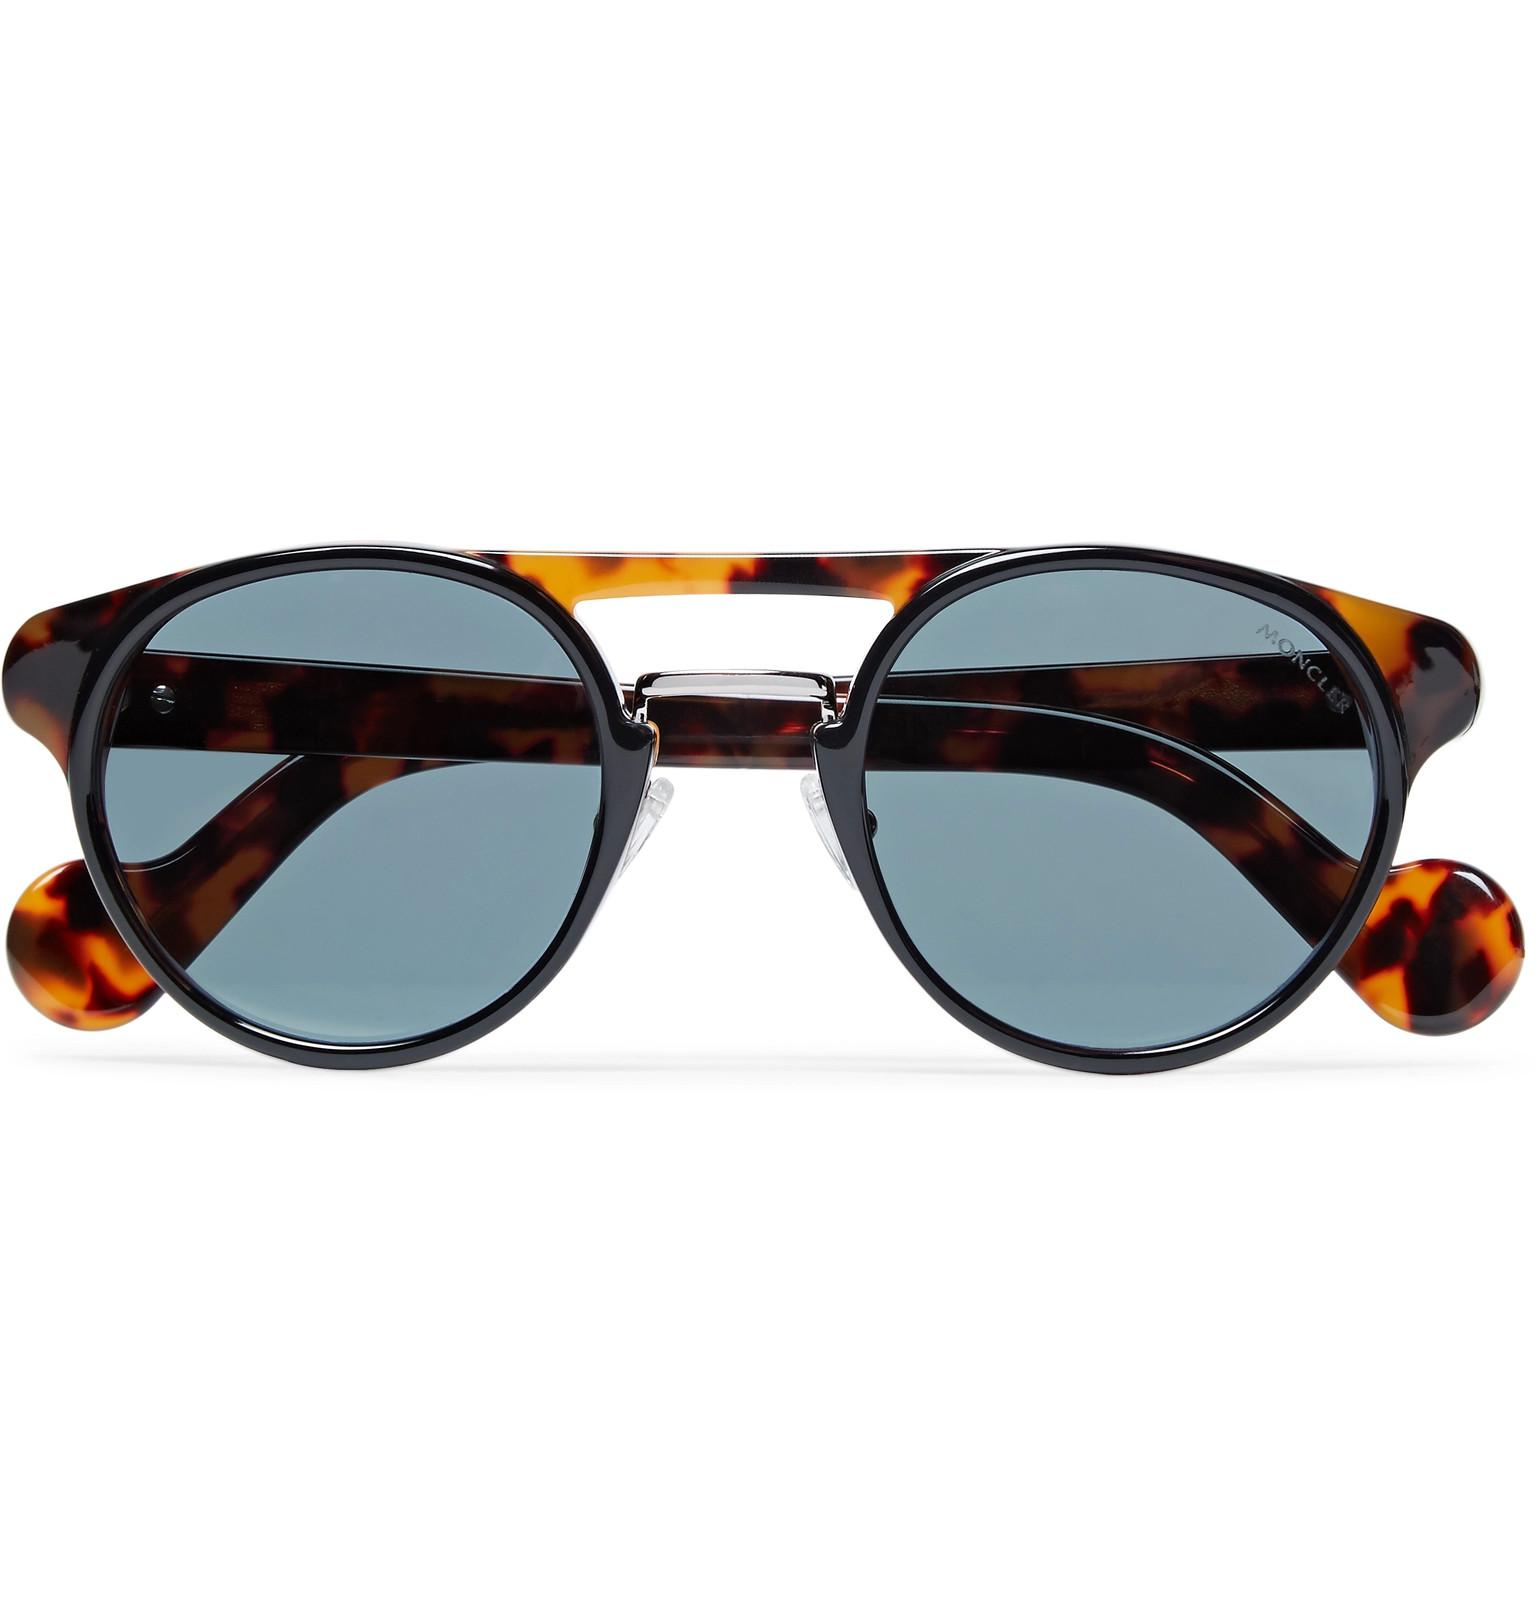 Round-frame Acatete Polarised Sunglasses Moncler OUrmfhS